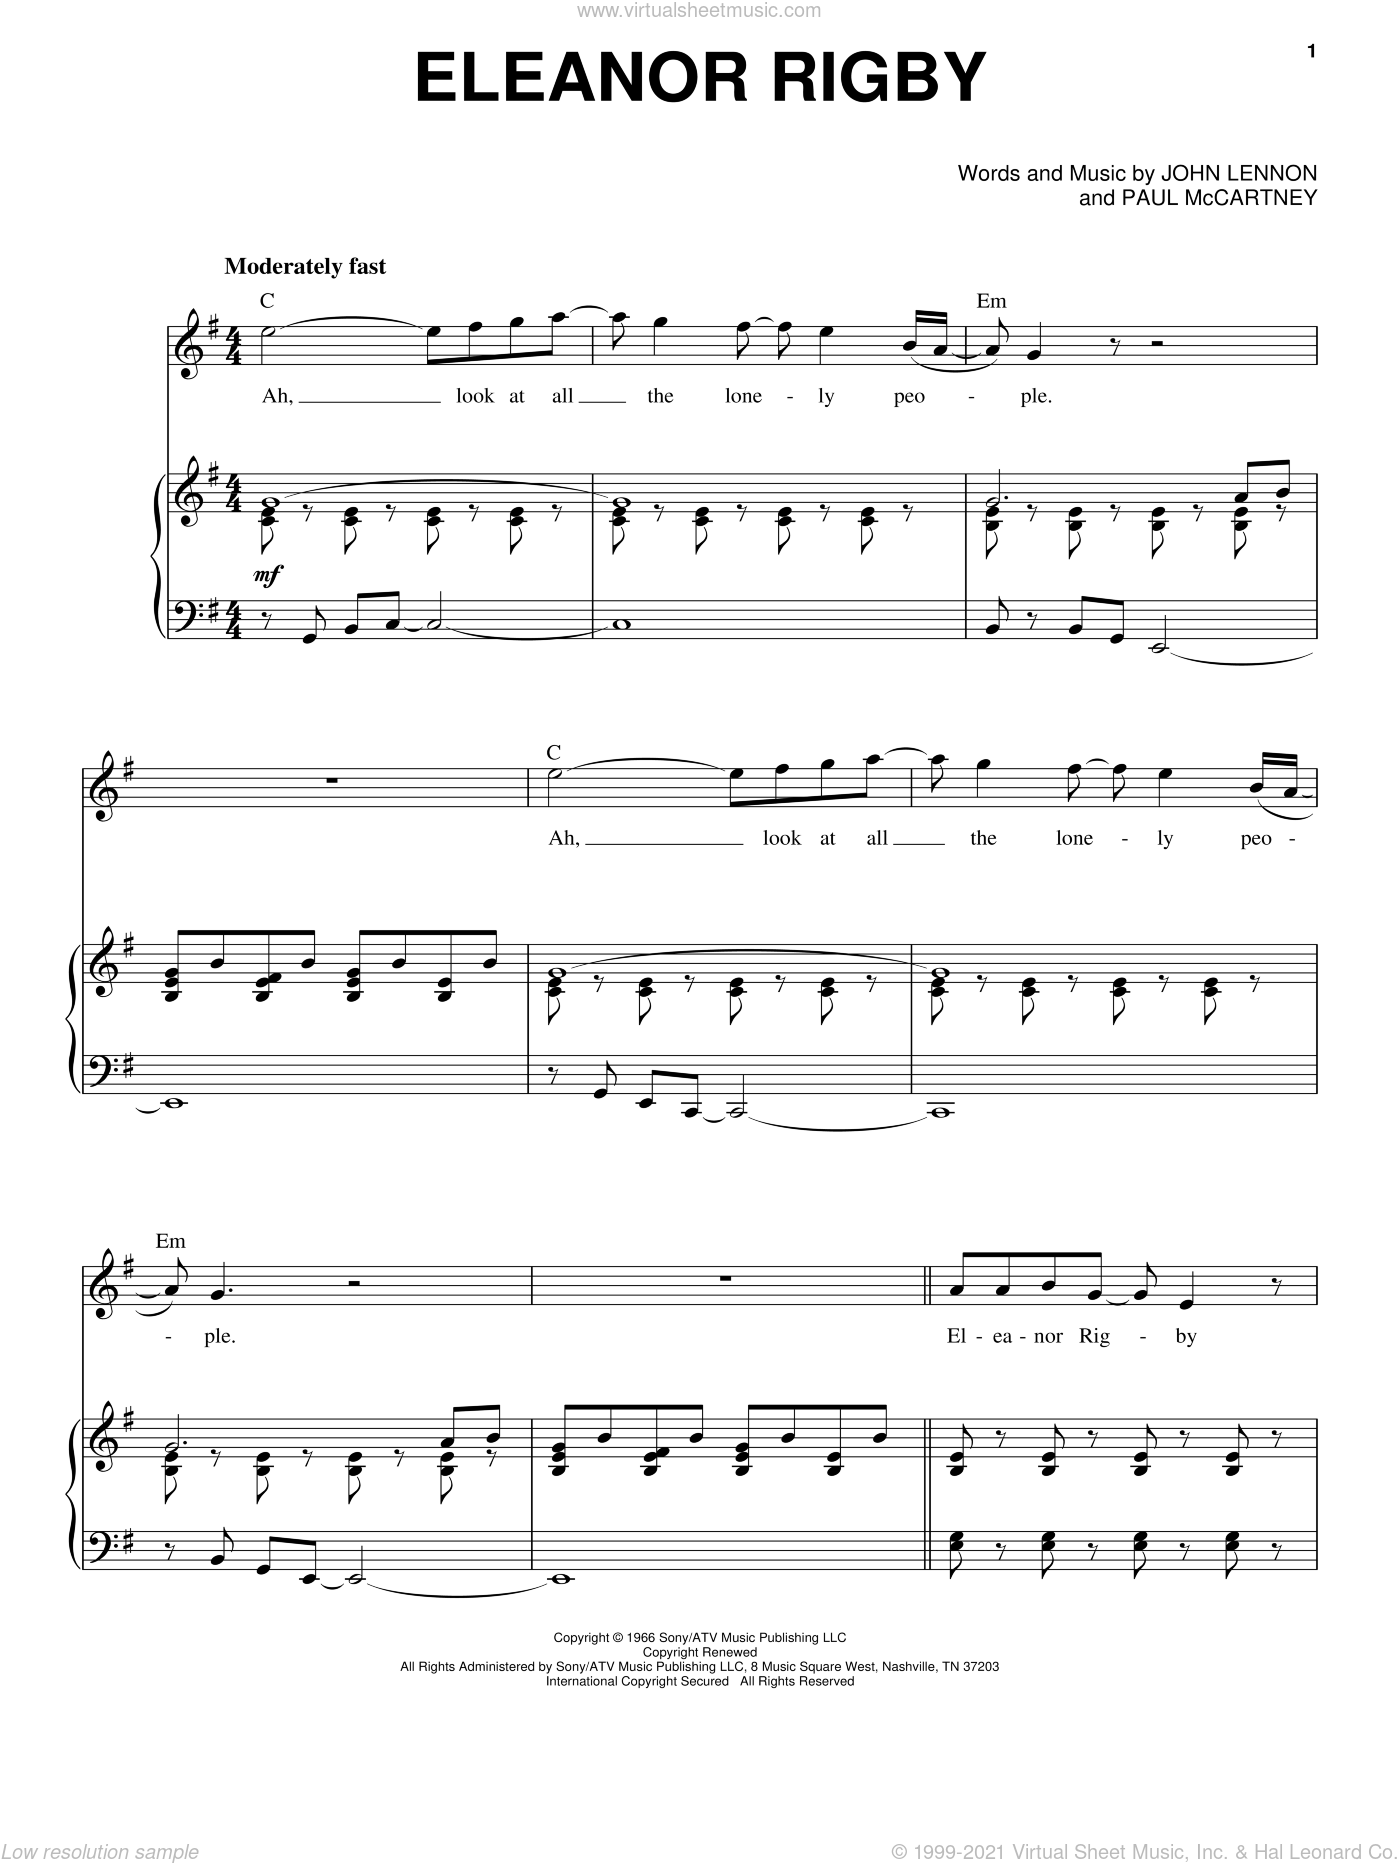 Eleanor Rigby sheet music for voice and piano by The Beatles, John Lennon and Paul McCartney, intermediate skill level